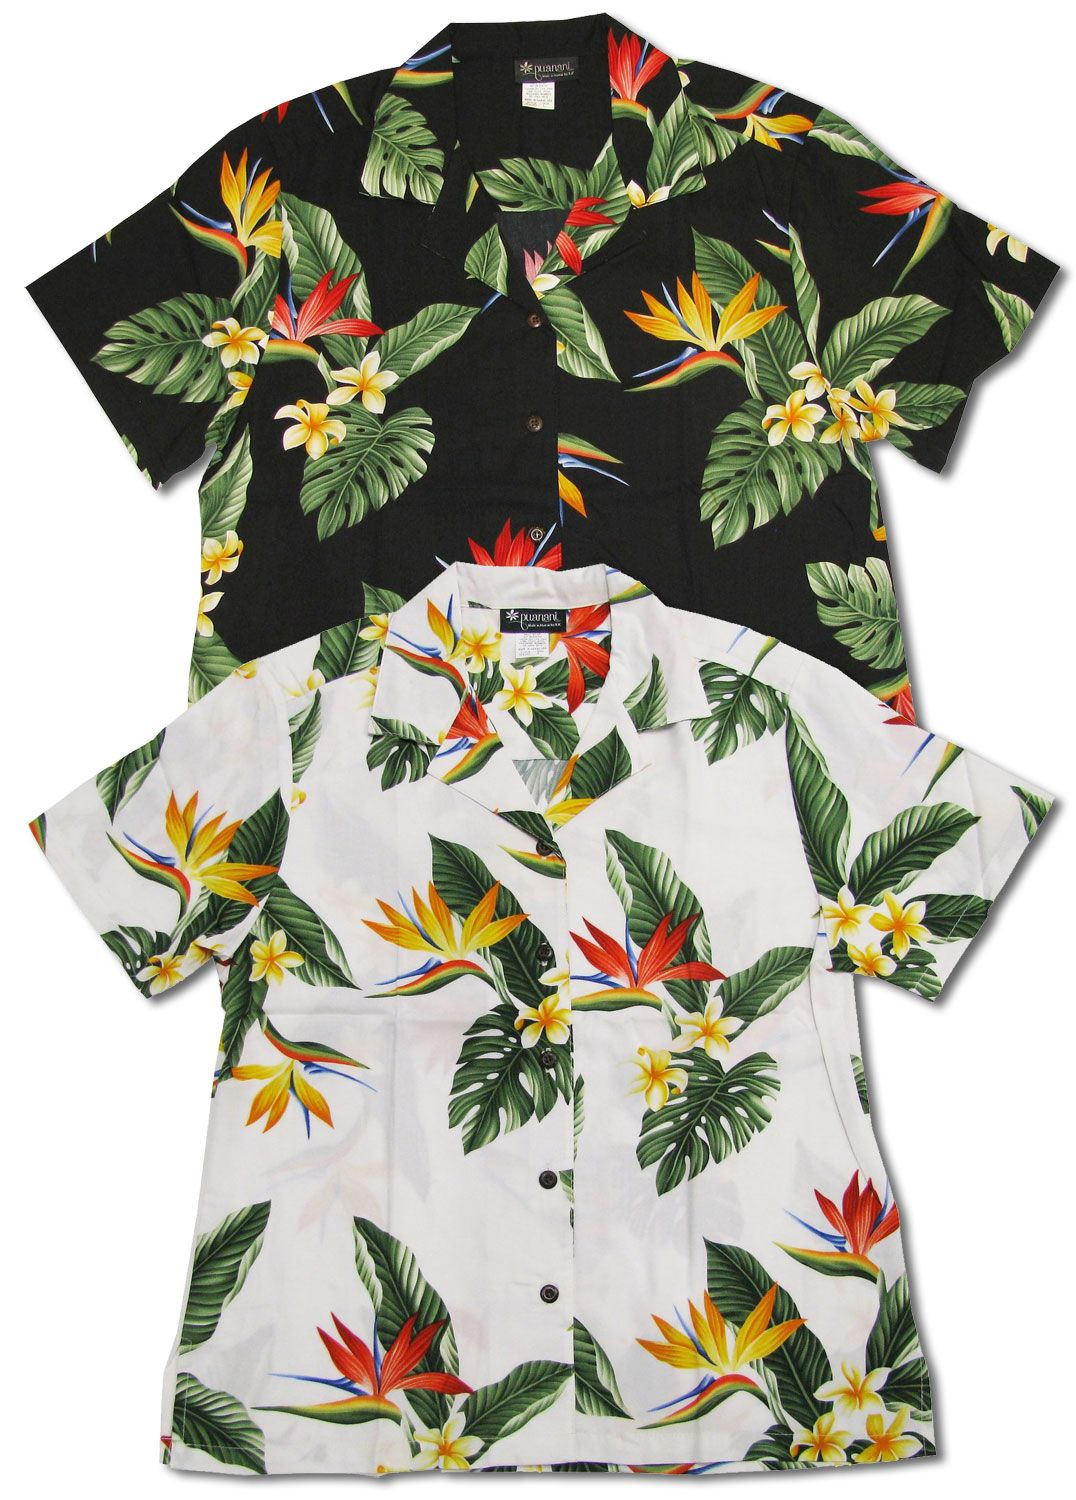 9a03aba05deb Bird of Paradise Display Hawaiian Tropical Aloha RJC brand, Puanani label  women's Shirt X-Small to Plus 2X created in Red, White and Black. Made in  Hawaii.